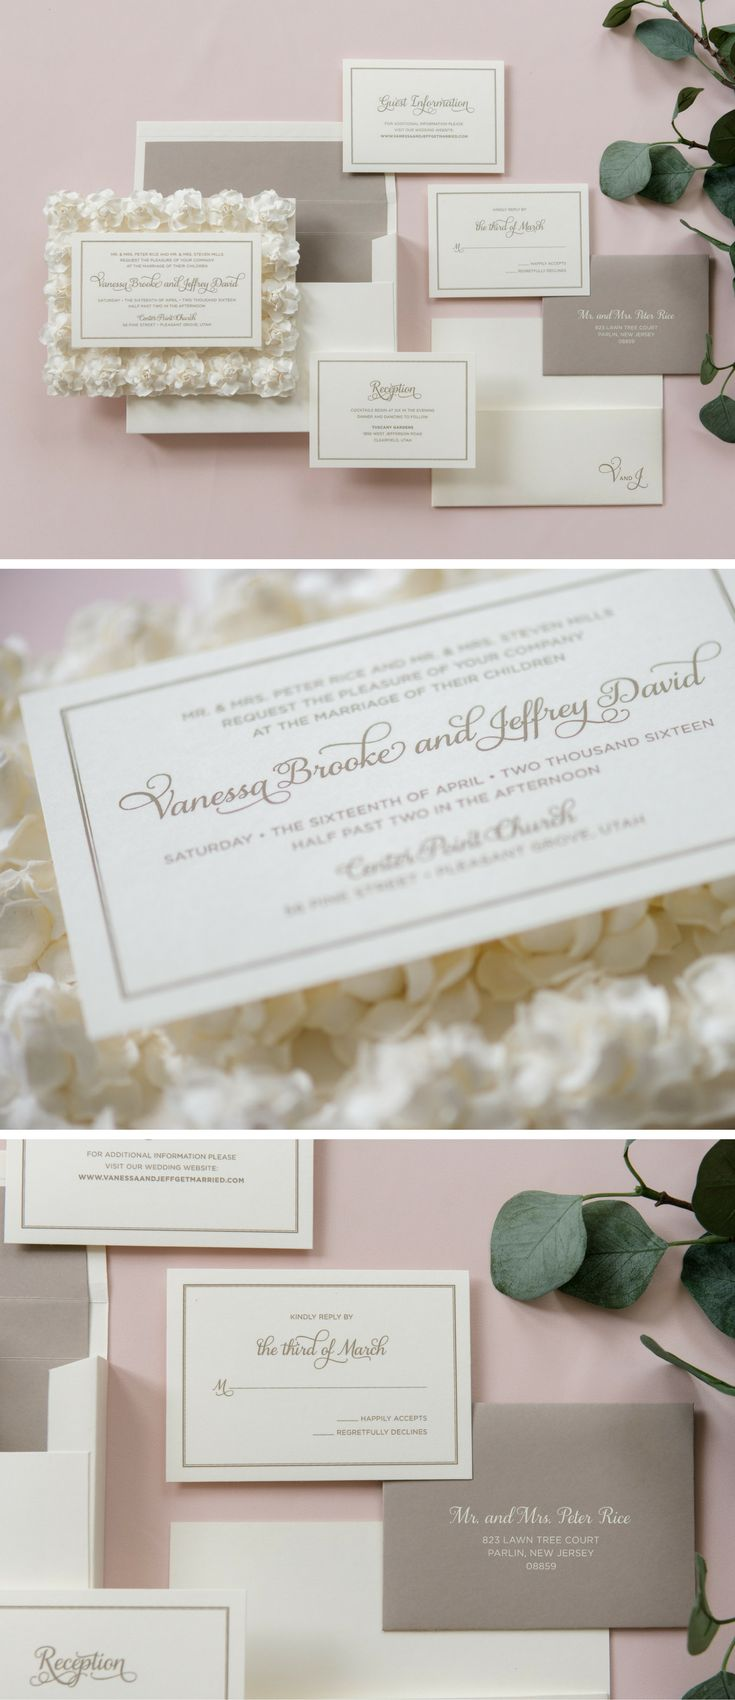 how to address wedding invitations inside envelope%0A This custom three dimensional wedding invitation is set on a bed of     ivory paper roses  Guests will receive the      u   d x      u   d flower bed inside  of a